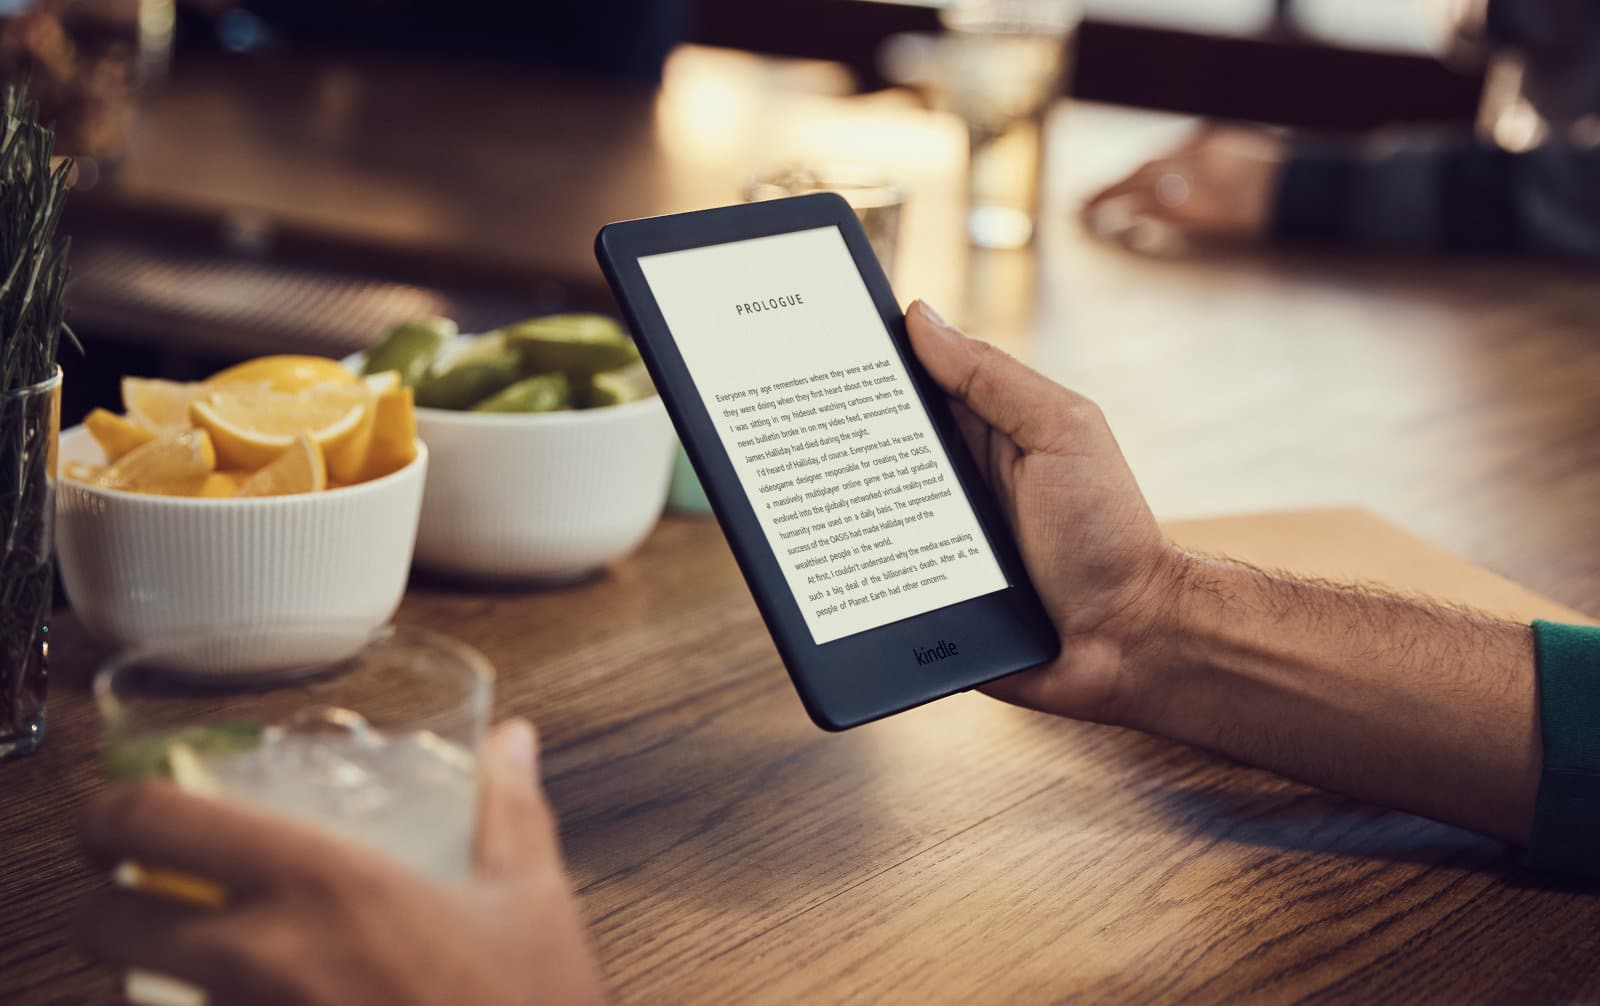 Kindle Publishing for Periodicals for blogs is shutting down